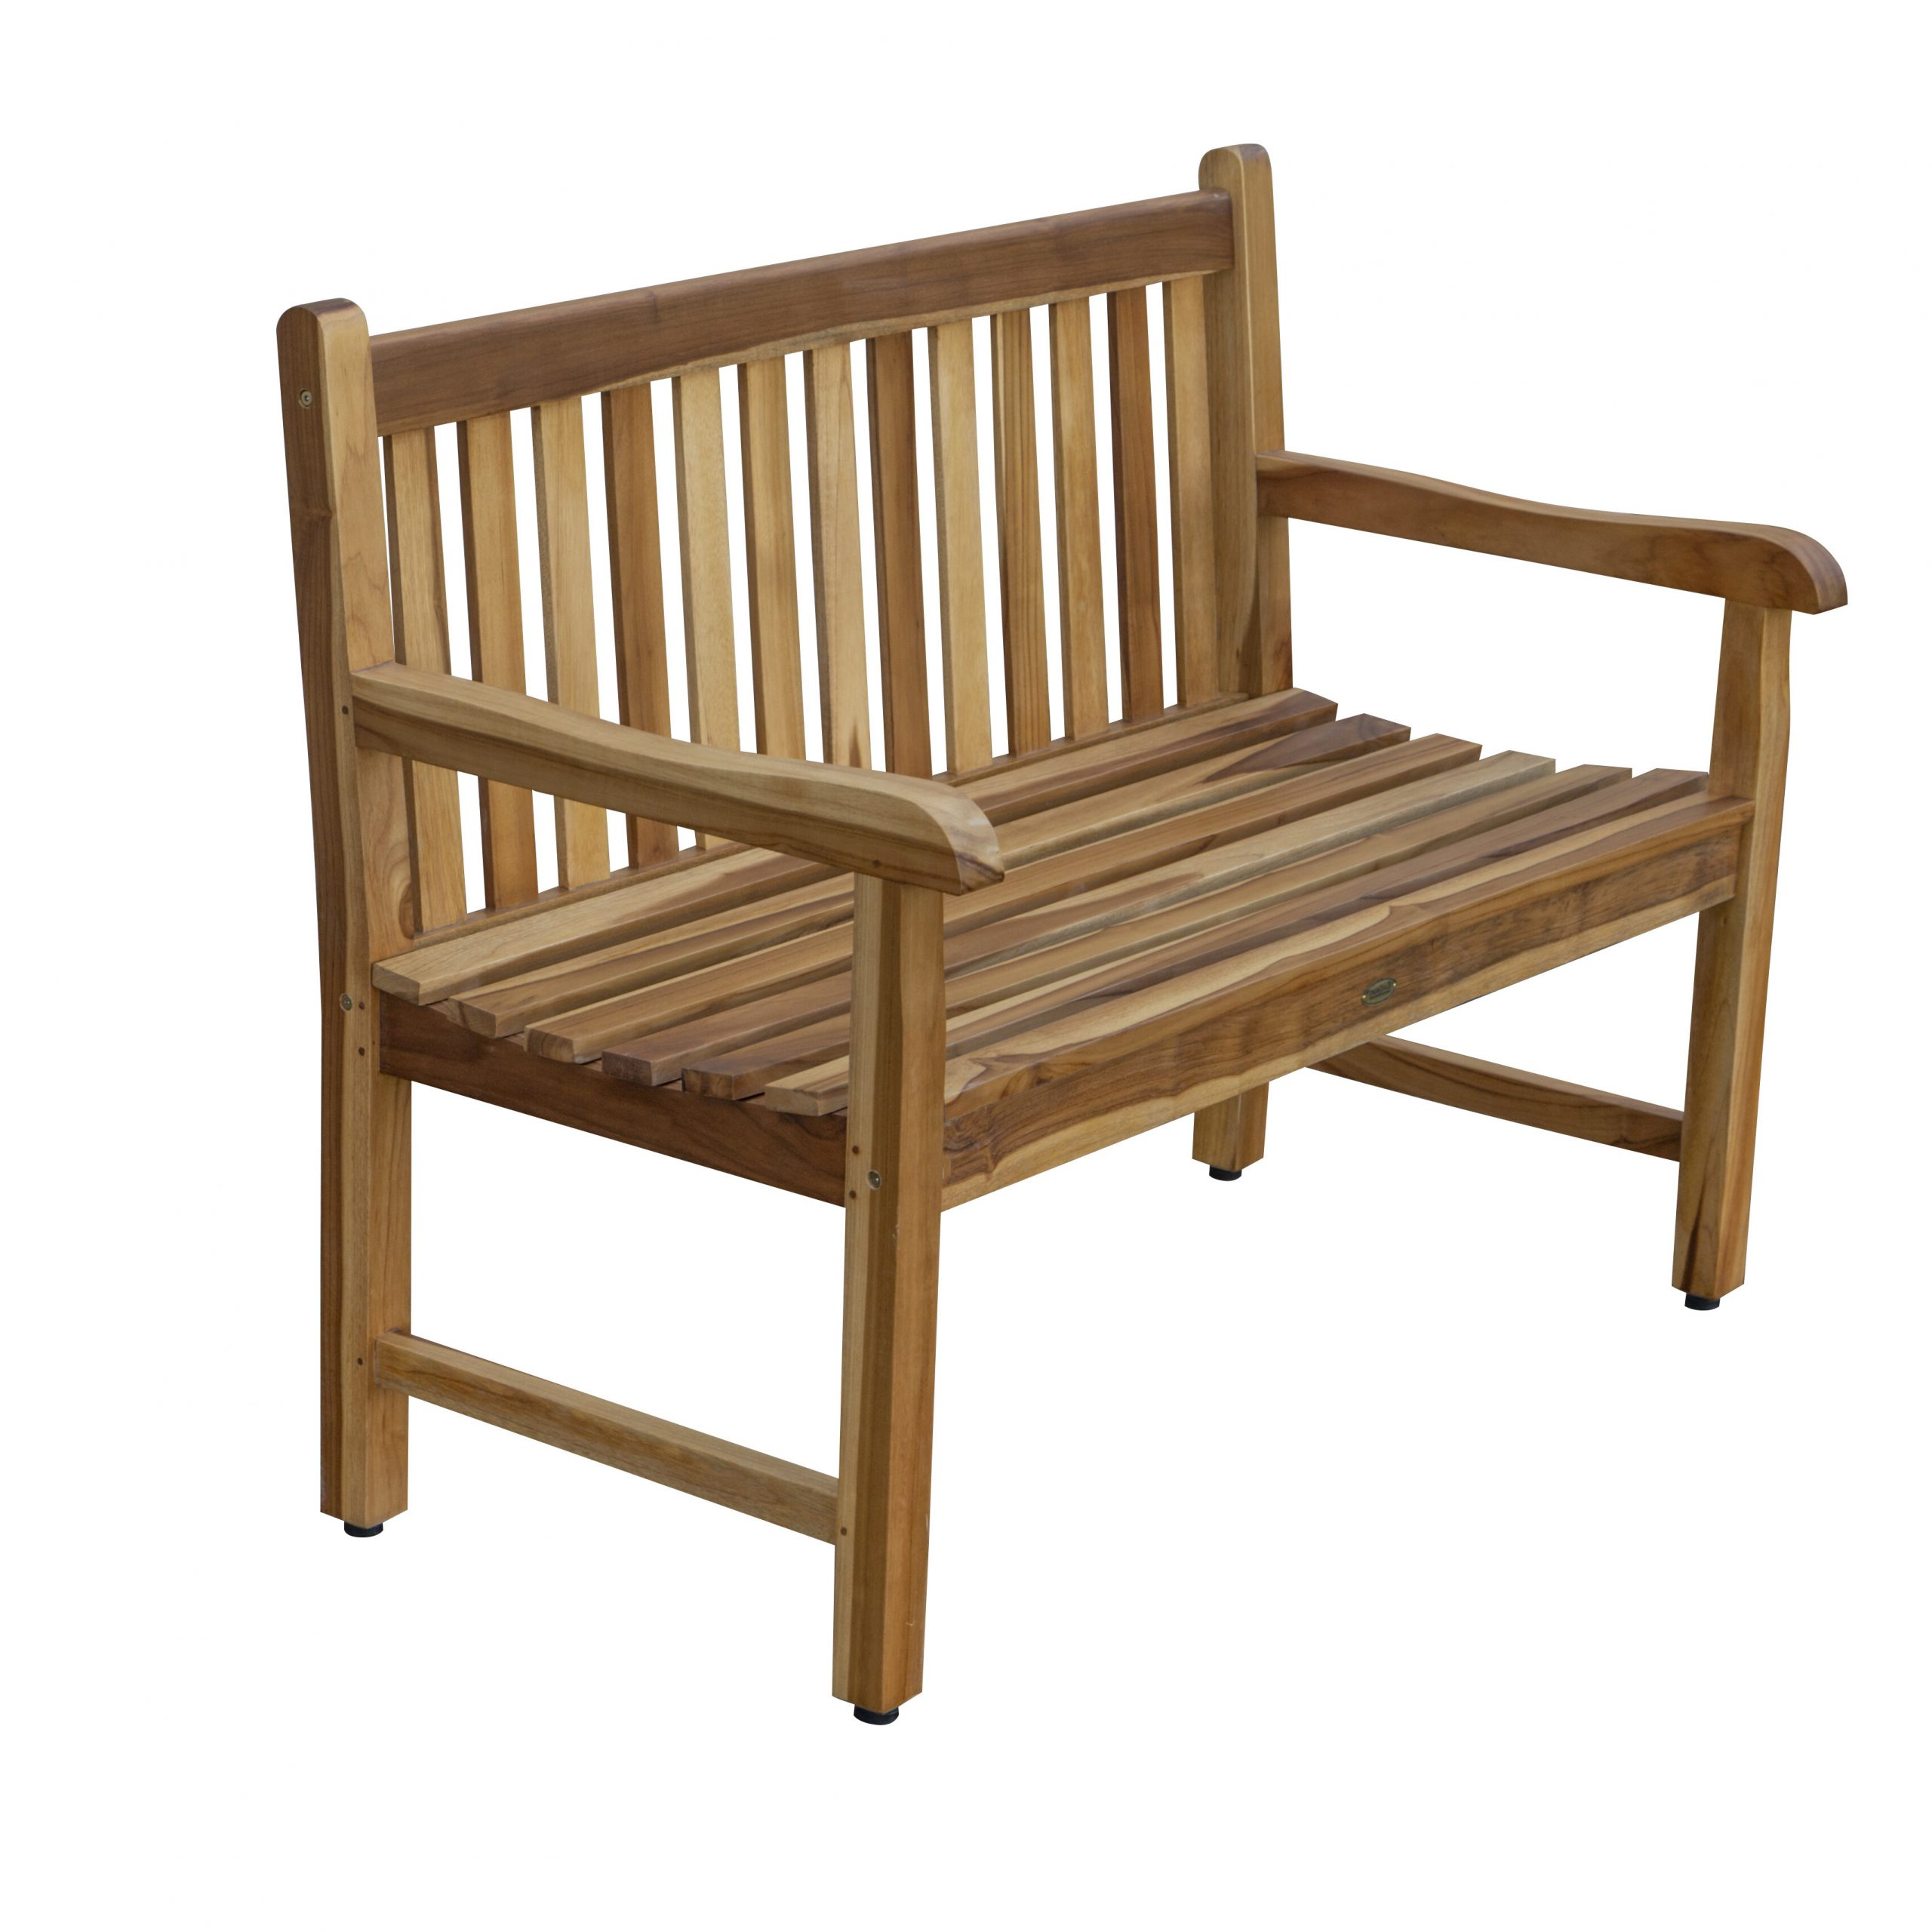 Current Teak Wood Outdoor Benches You'll Love In 2020 Intended For Coleen Outdoor Teak Garden Benches (View 1 of 30)